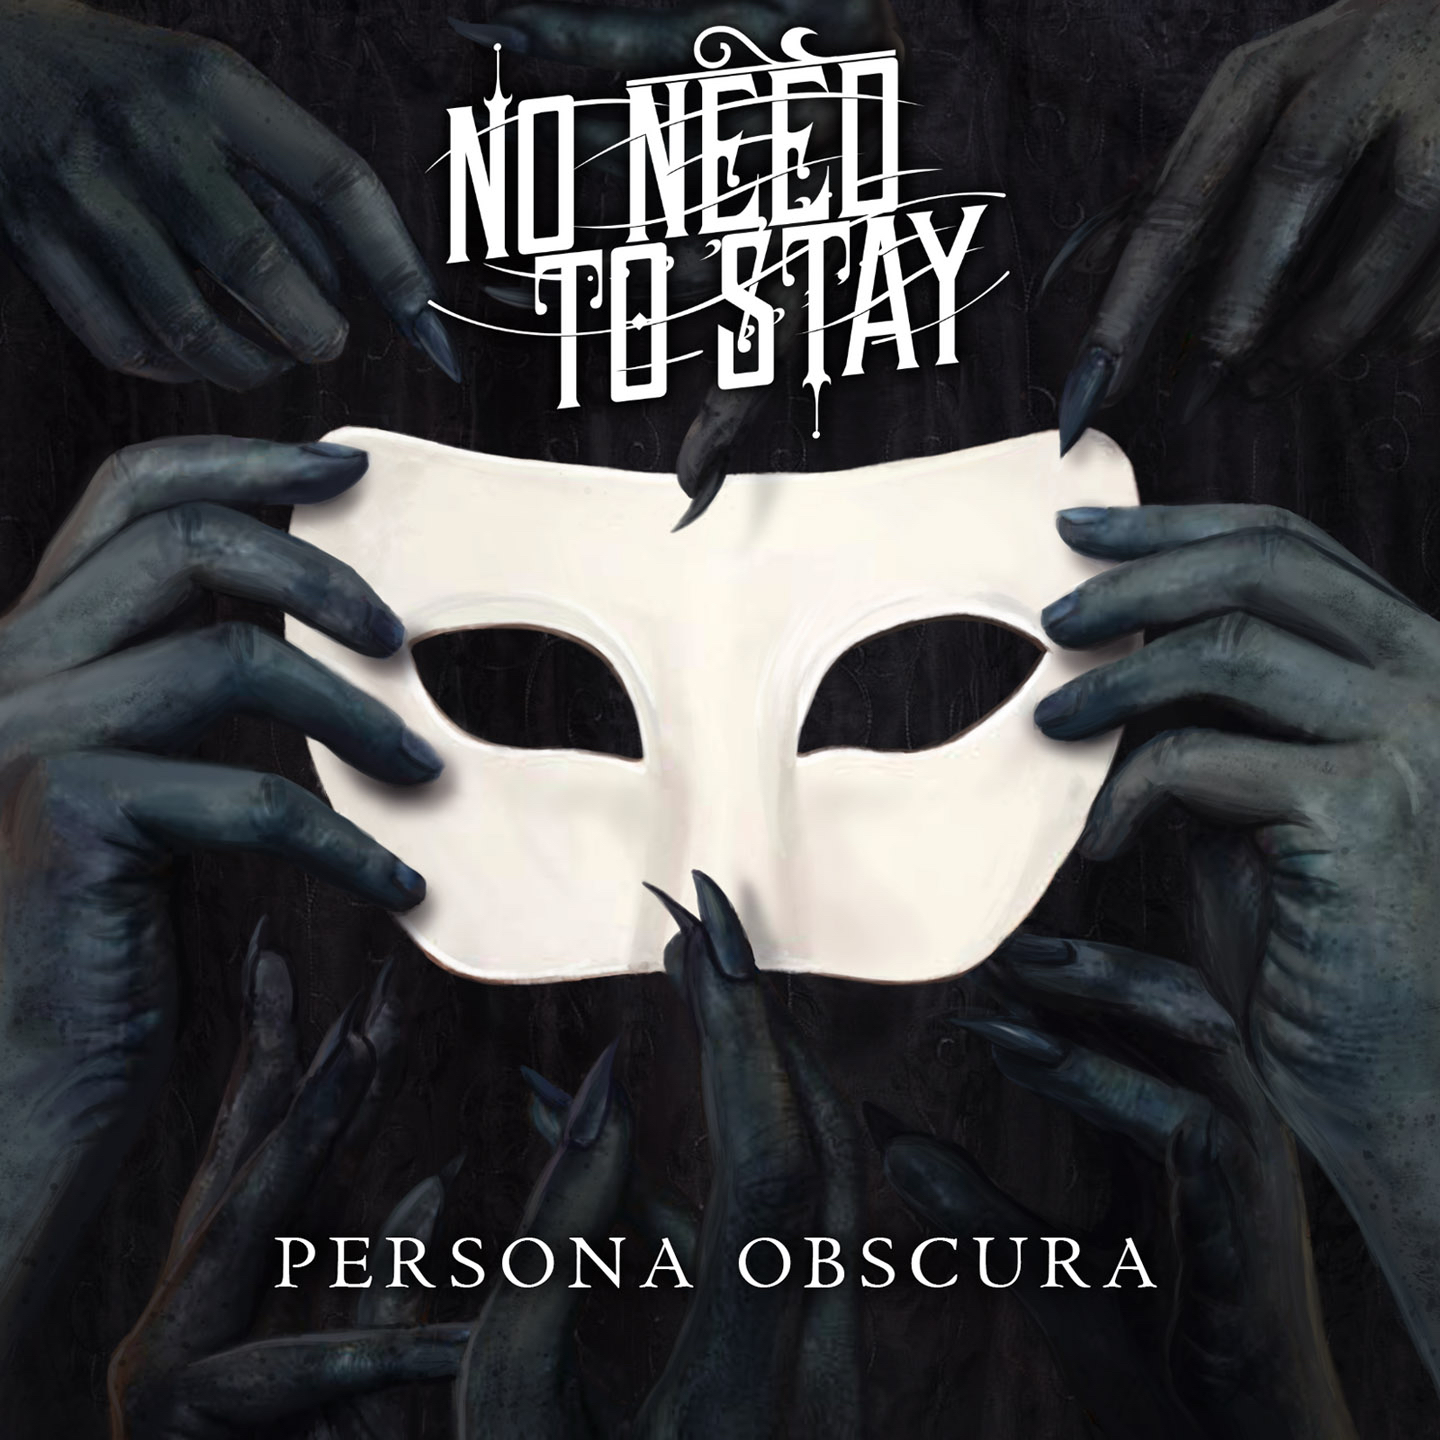 No Need To Stay - Act II. Persona Obscura [single] (2015)